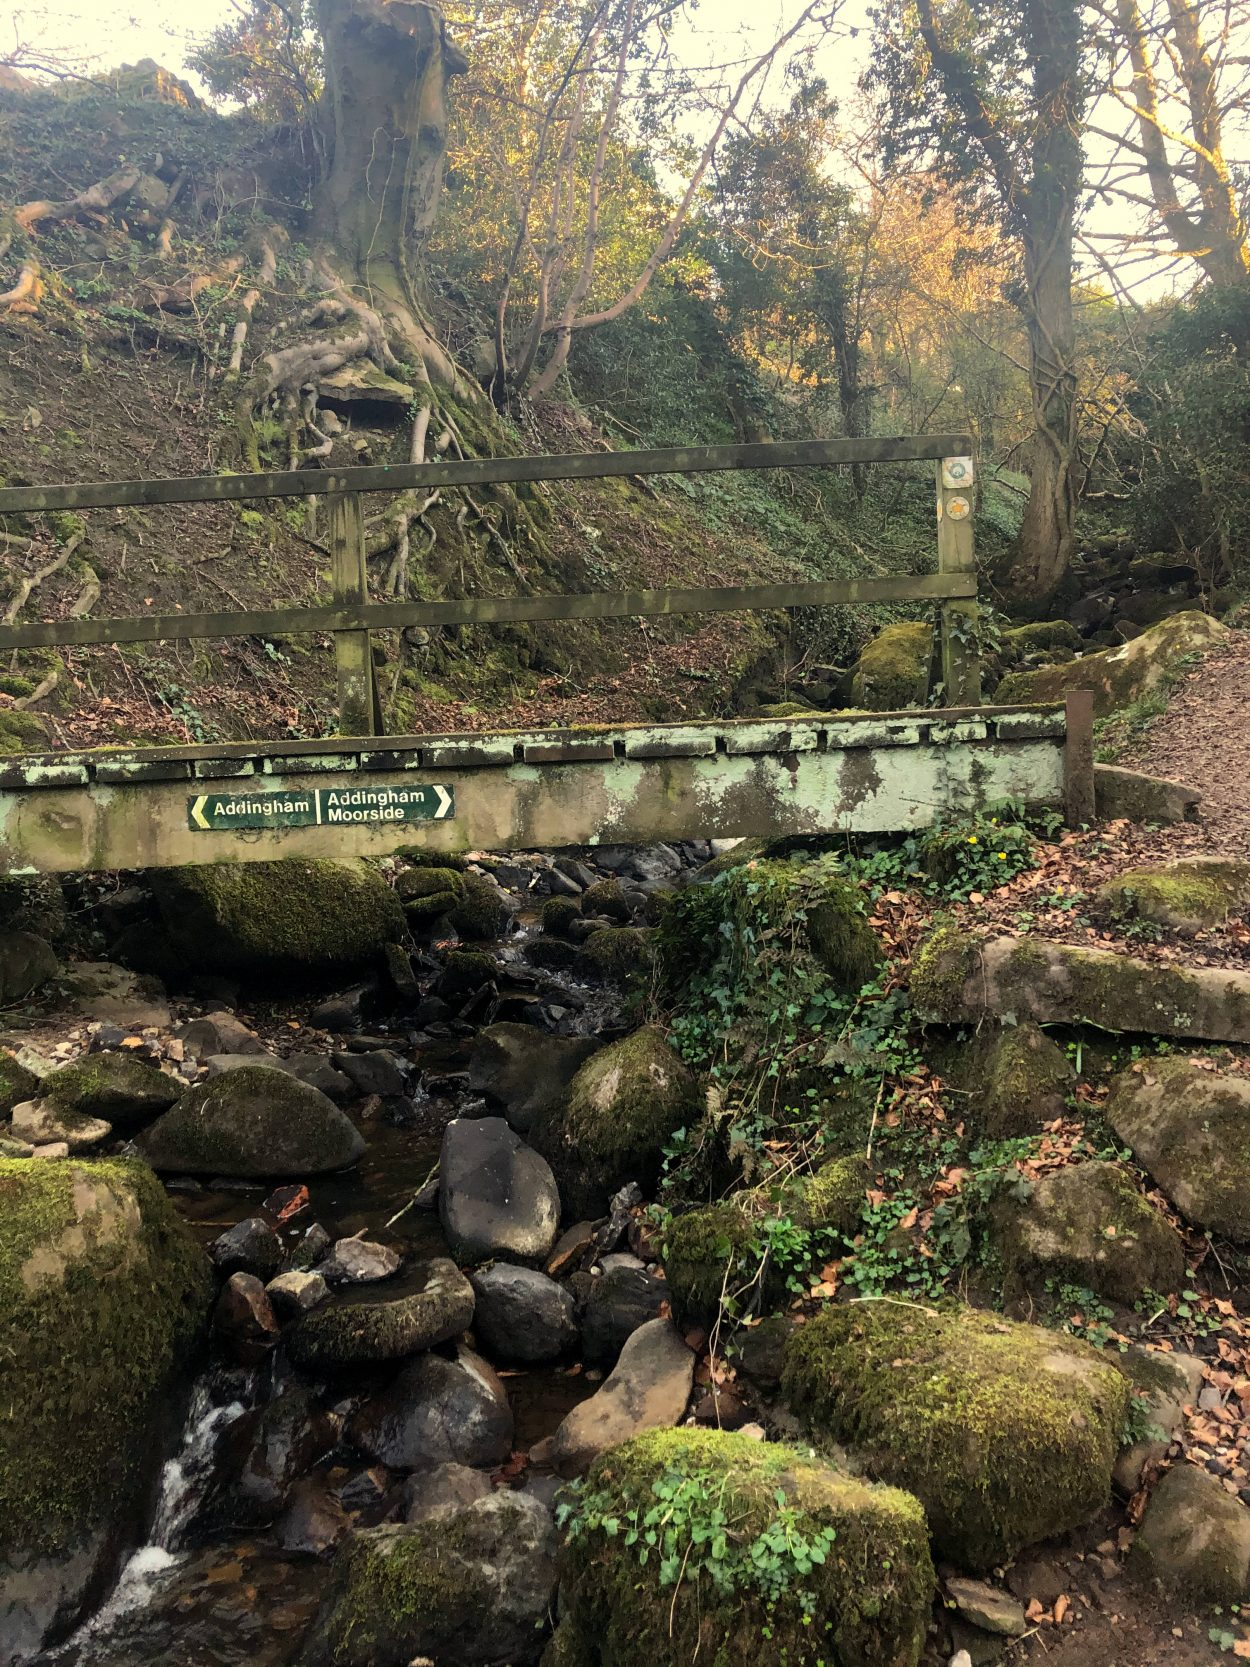 A bridge over a stream in Addingham, West Yorkshire